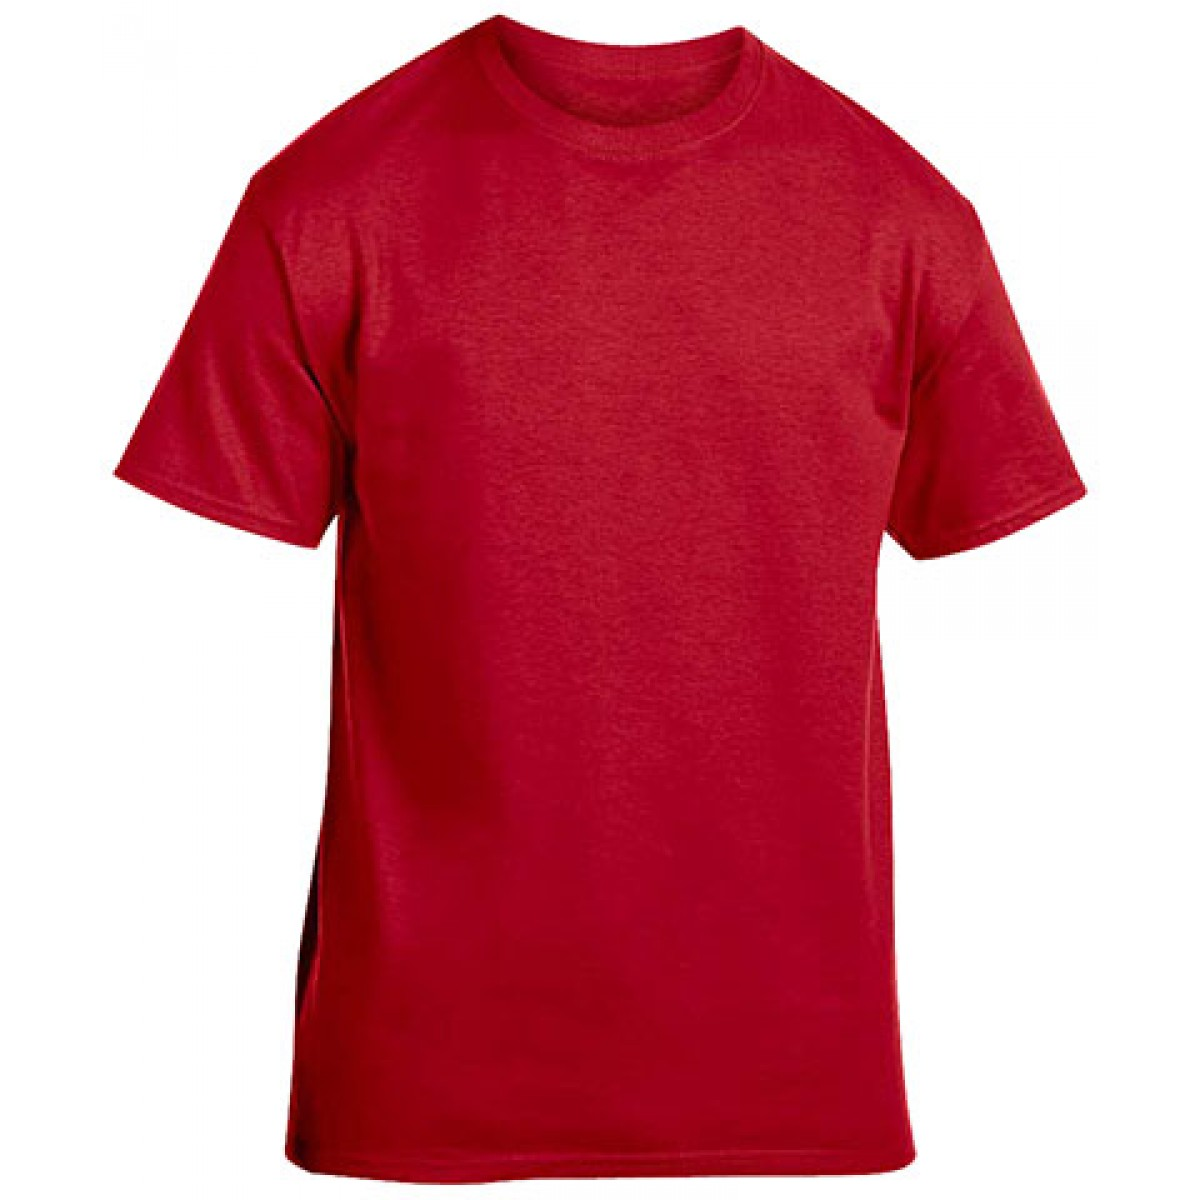 Heavy Cotton Activewear T-Shirt-Red-XL